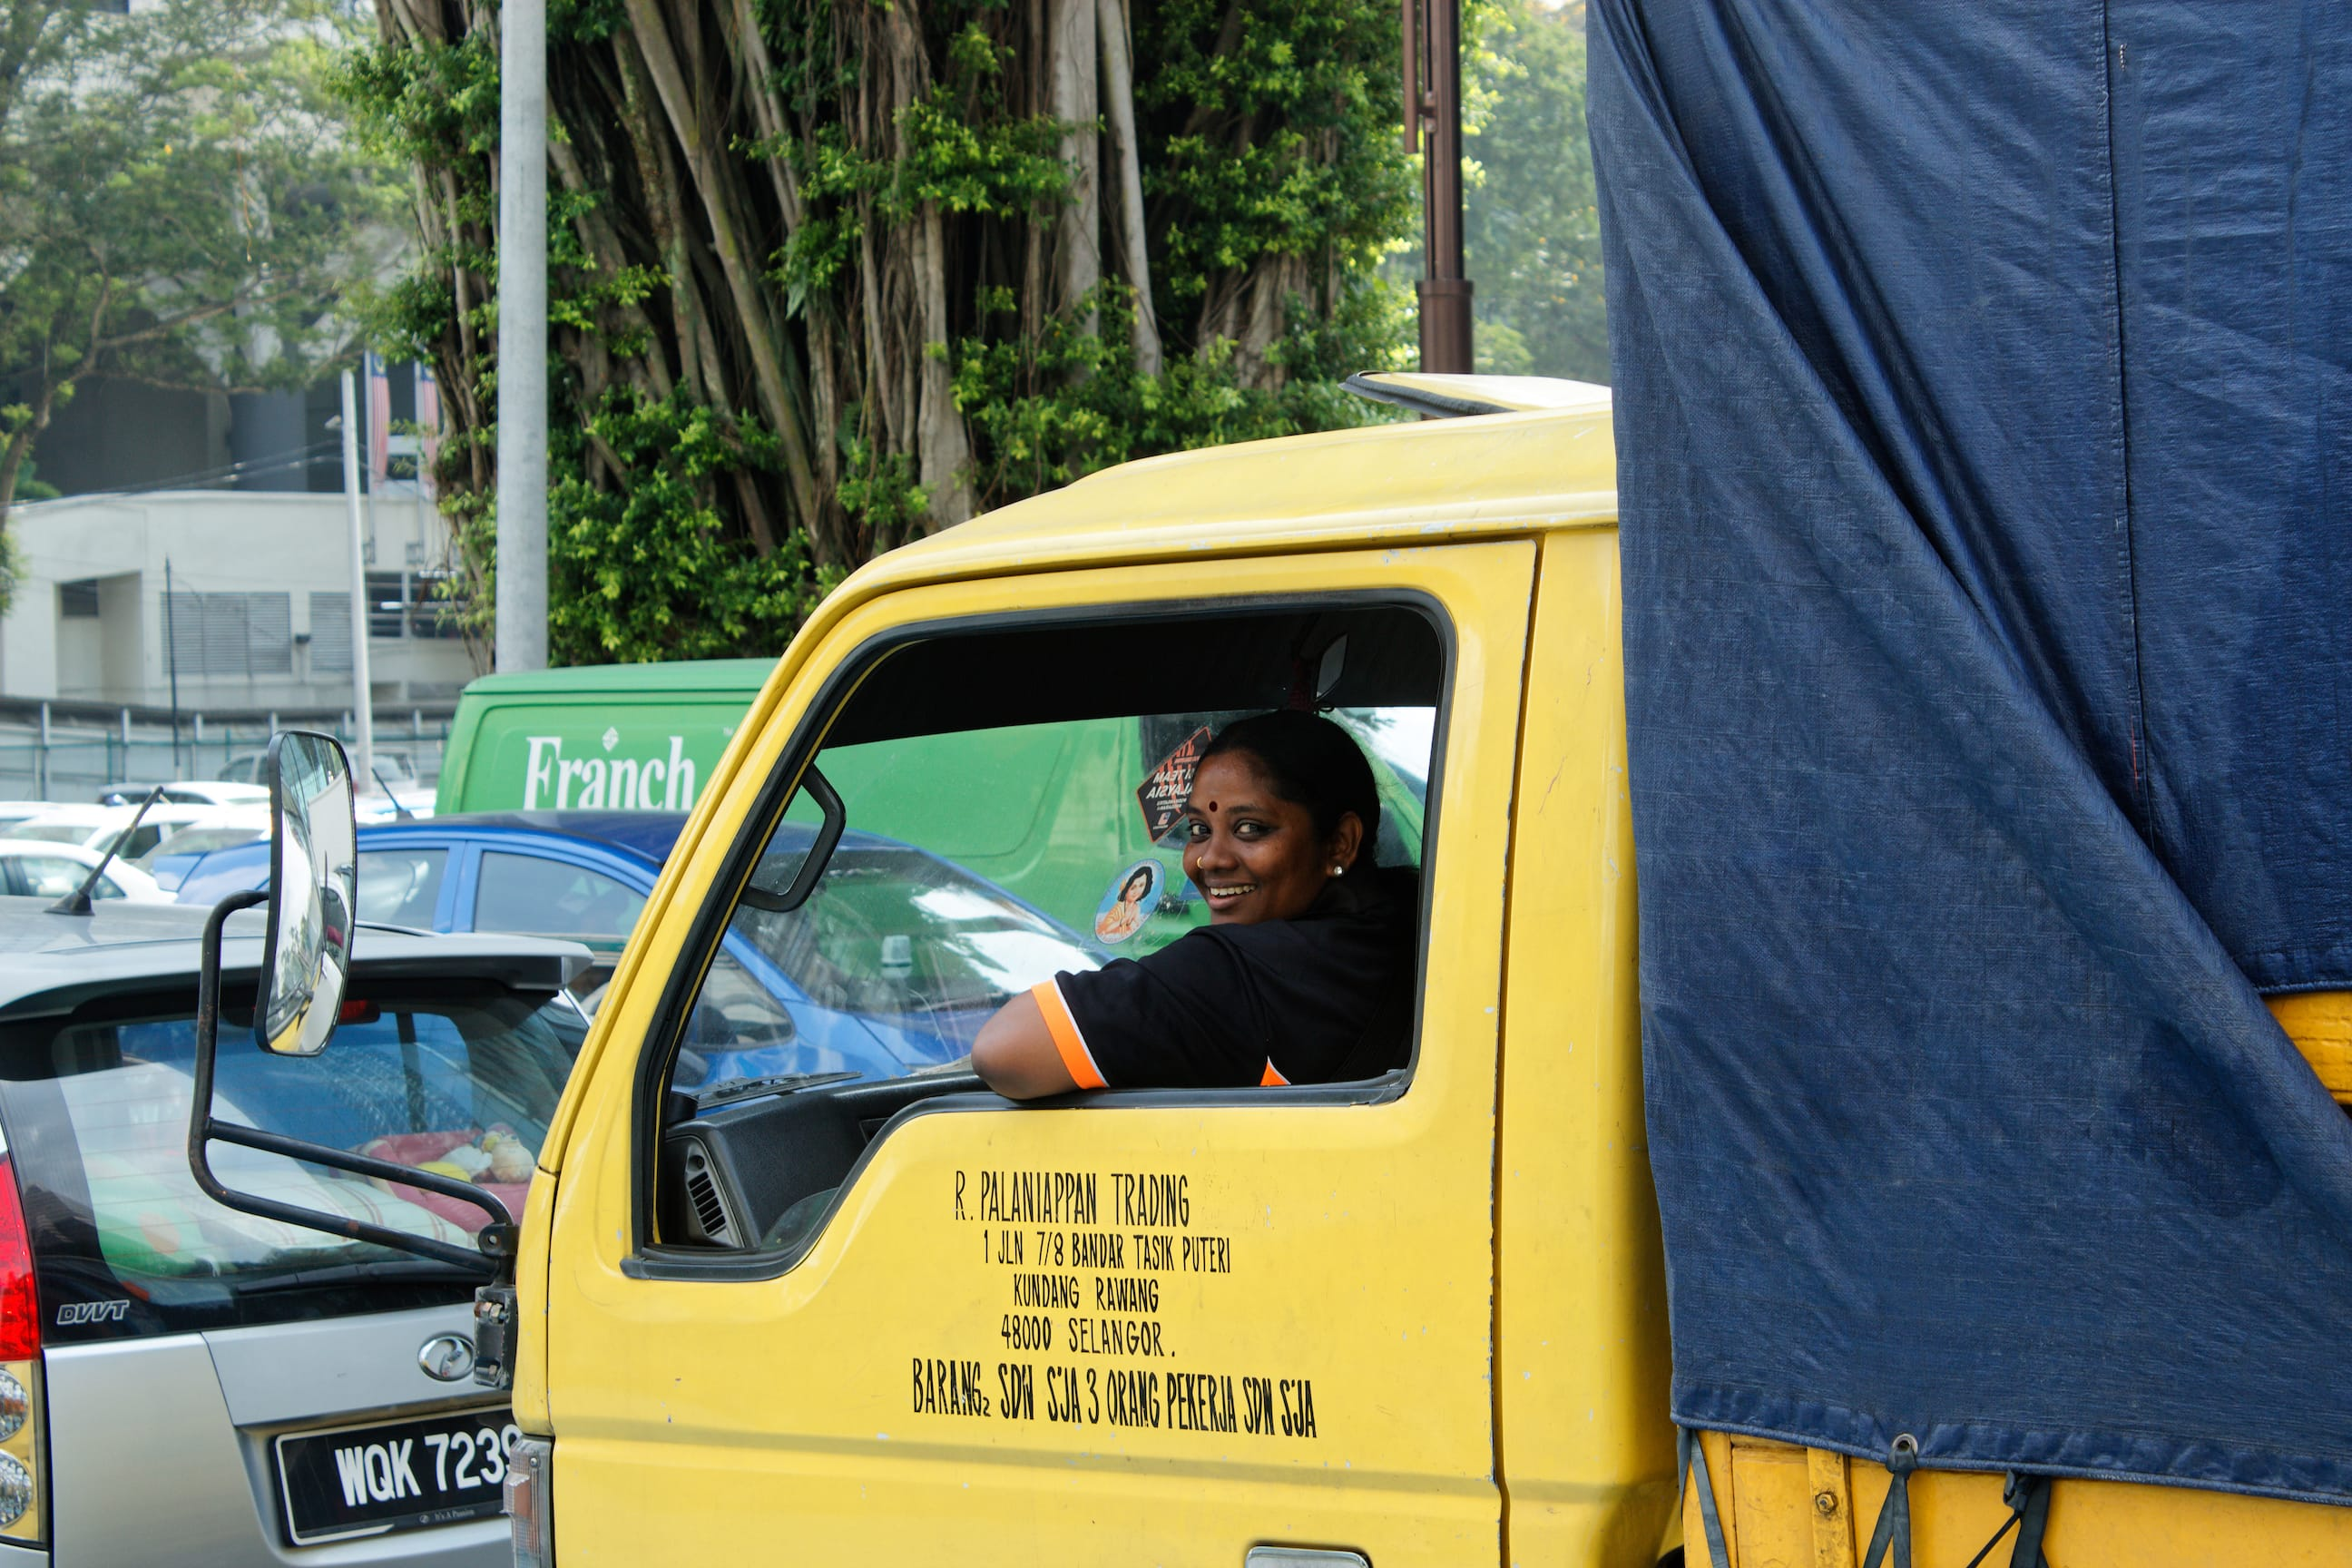 A Woman Smiles from a Vehicle